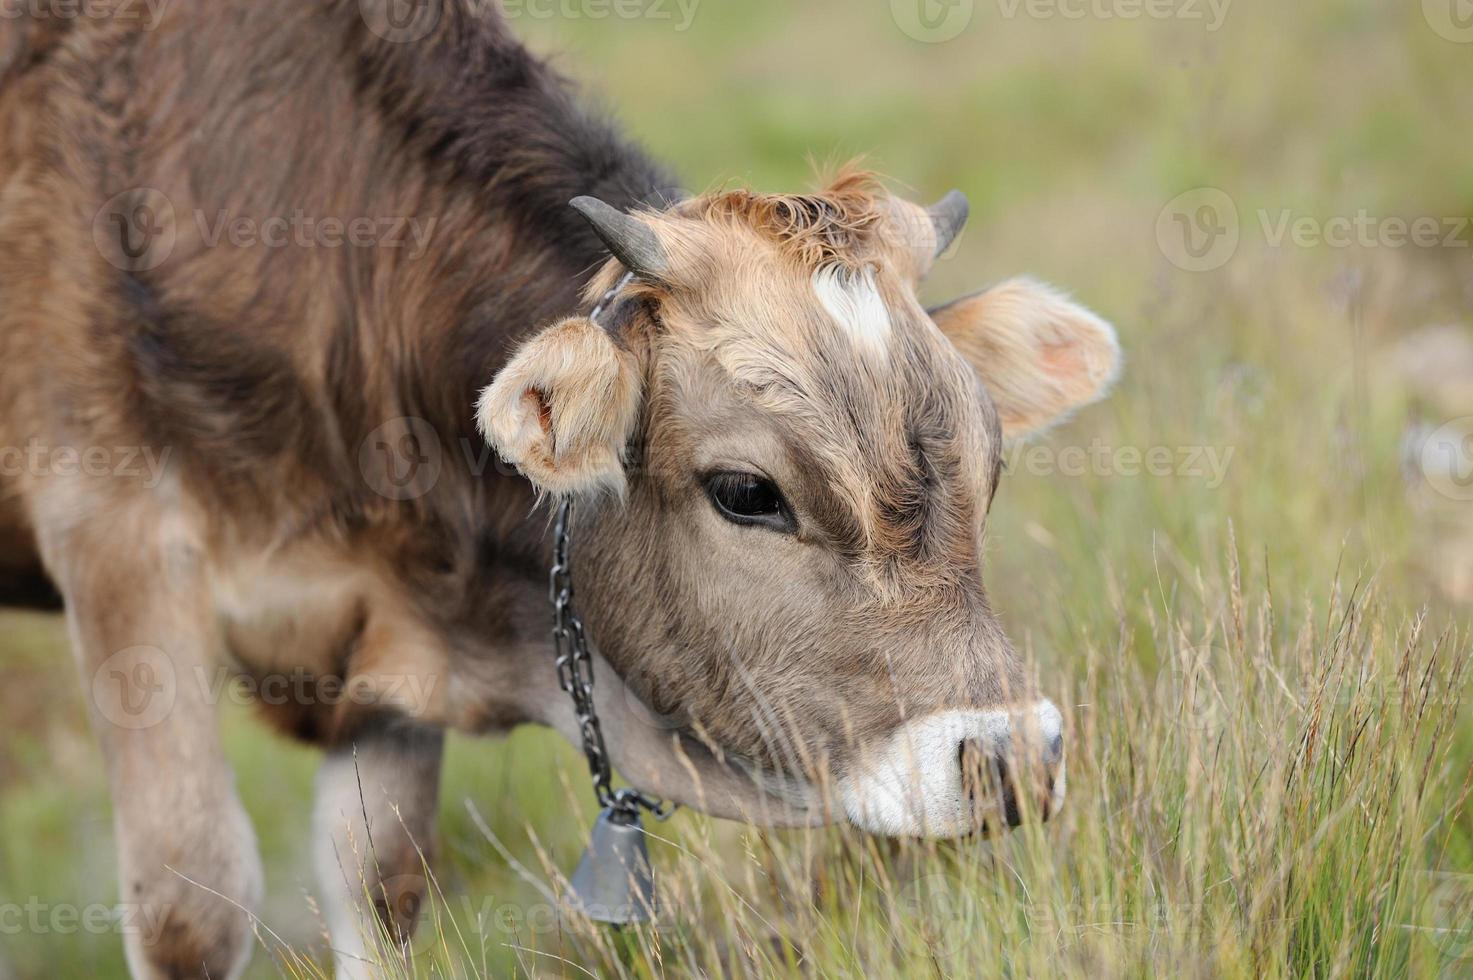 Cow in nature photo